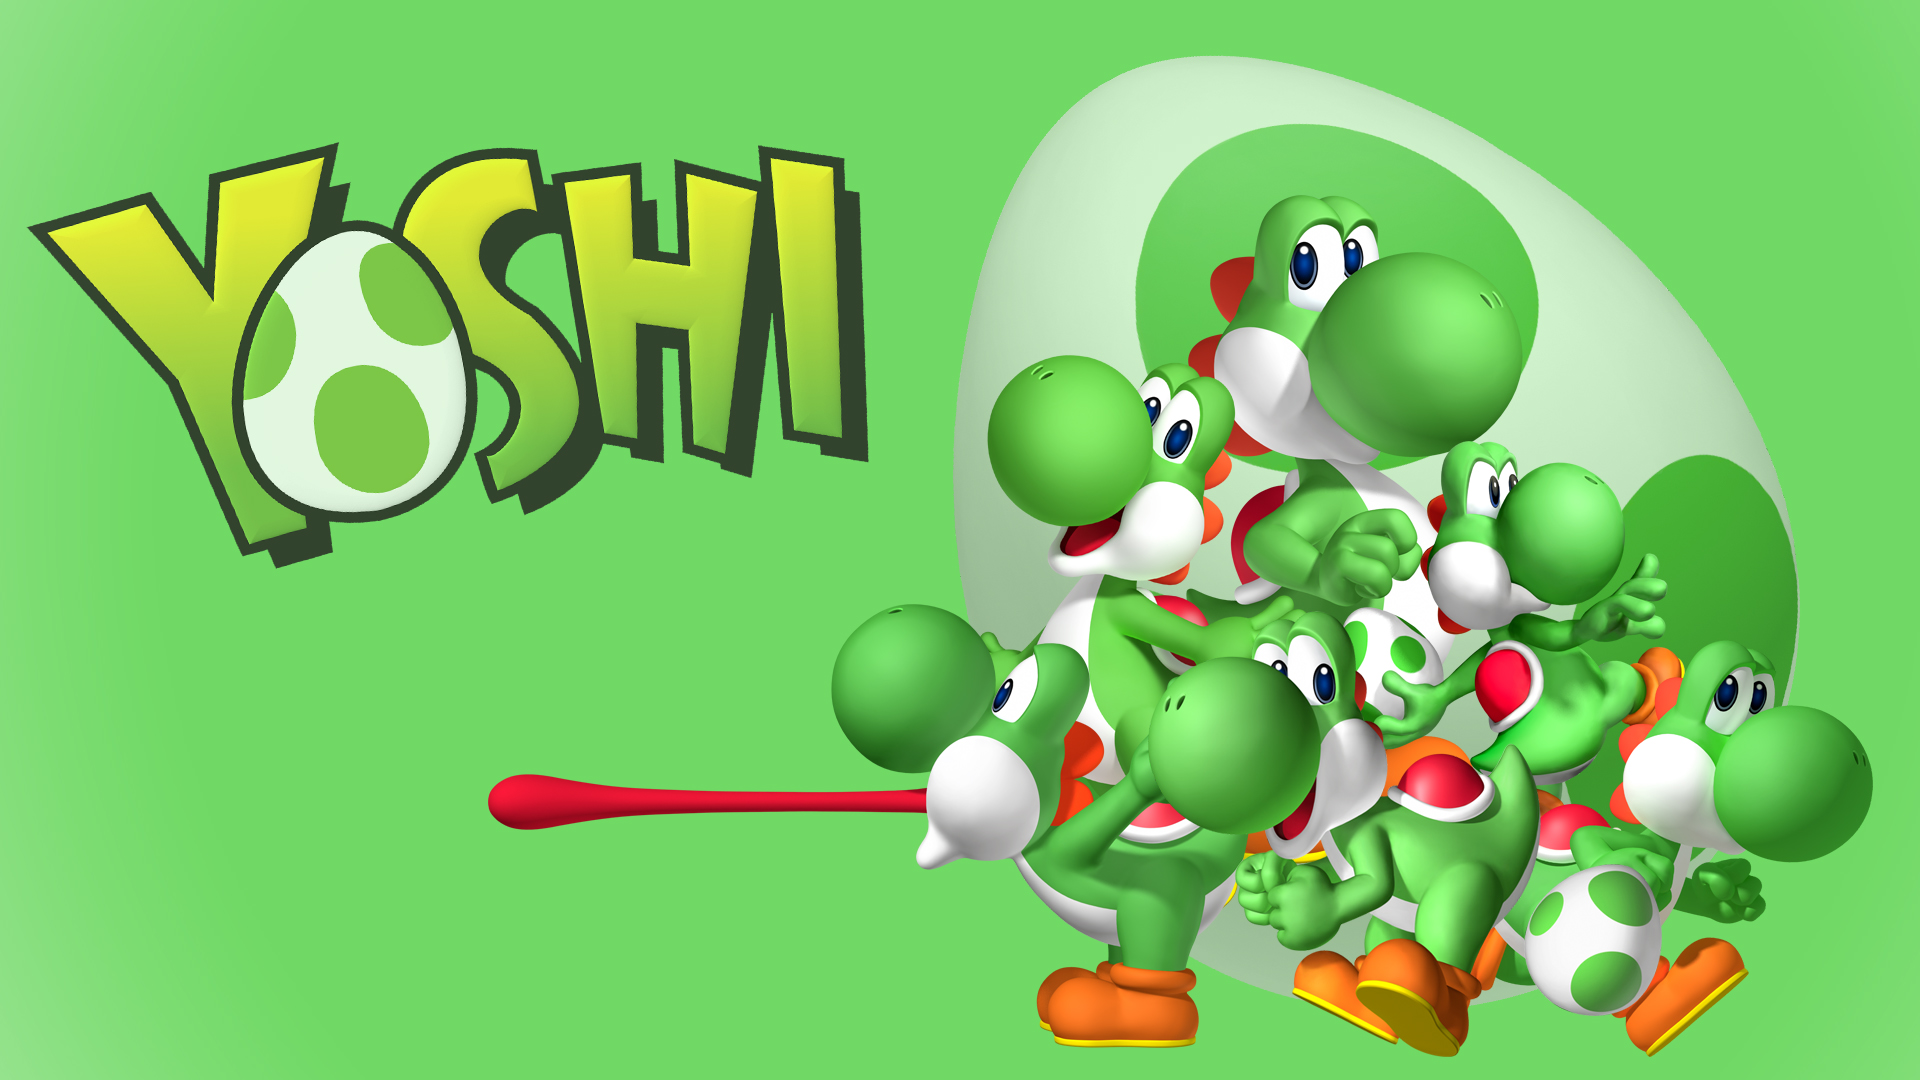 HD Yoshi Wallpaper - WallpaperSafari